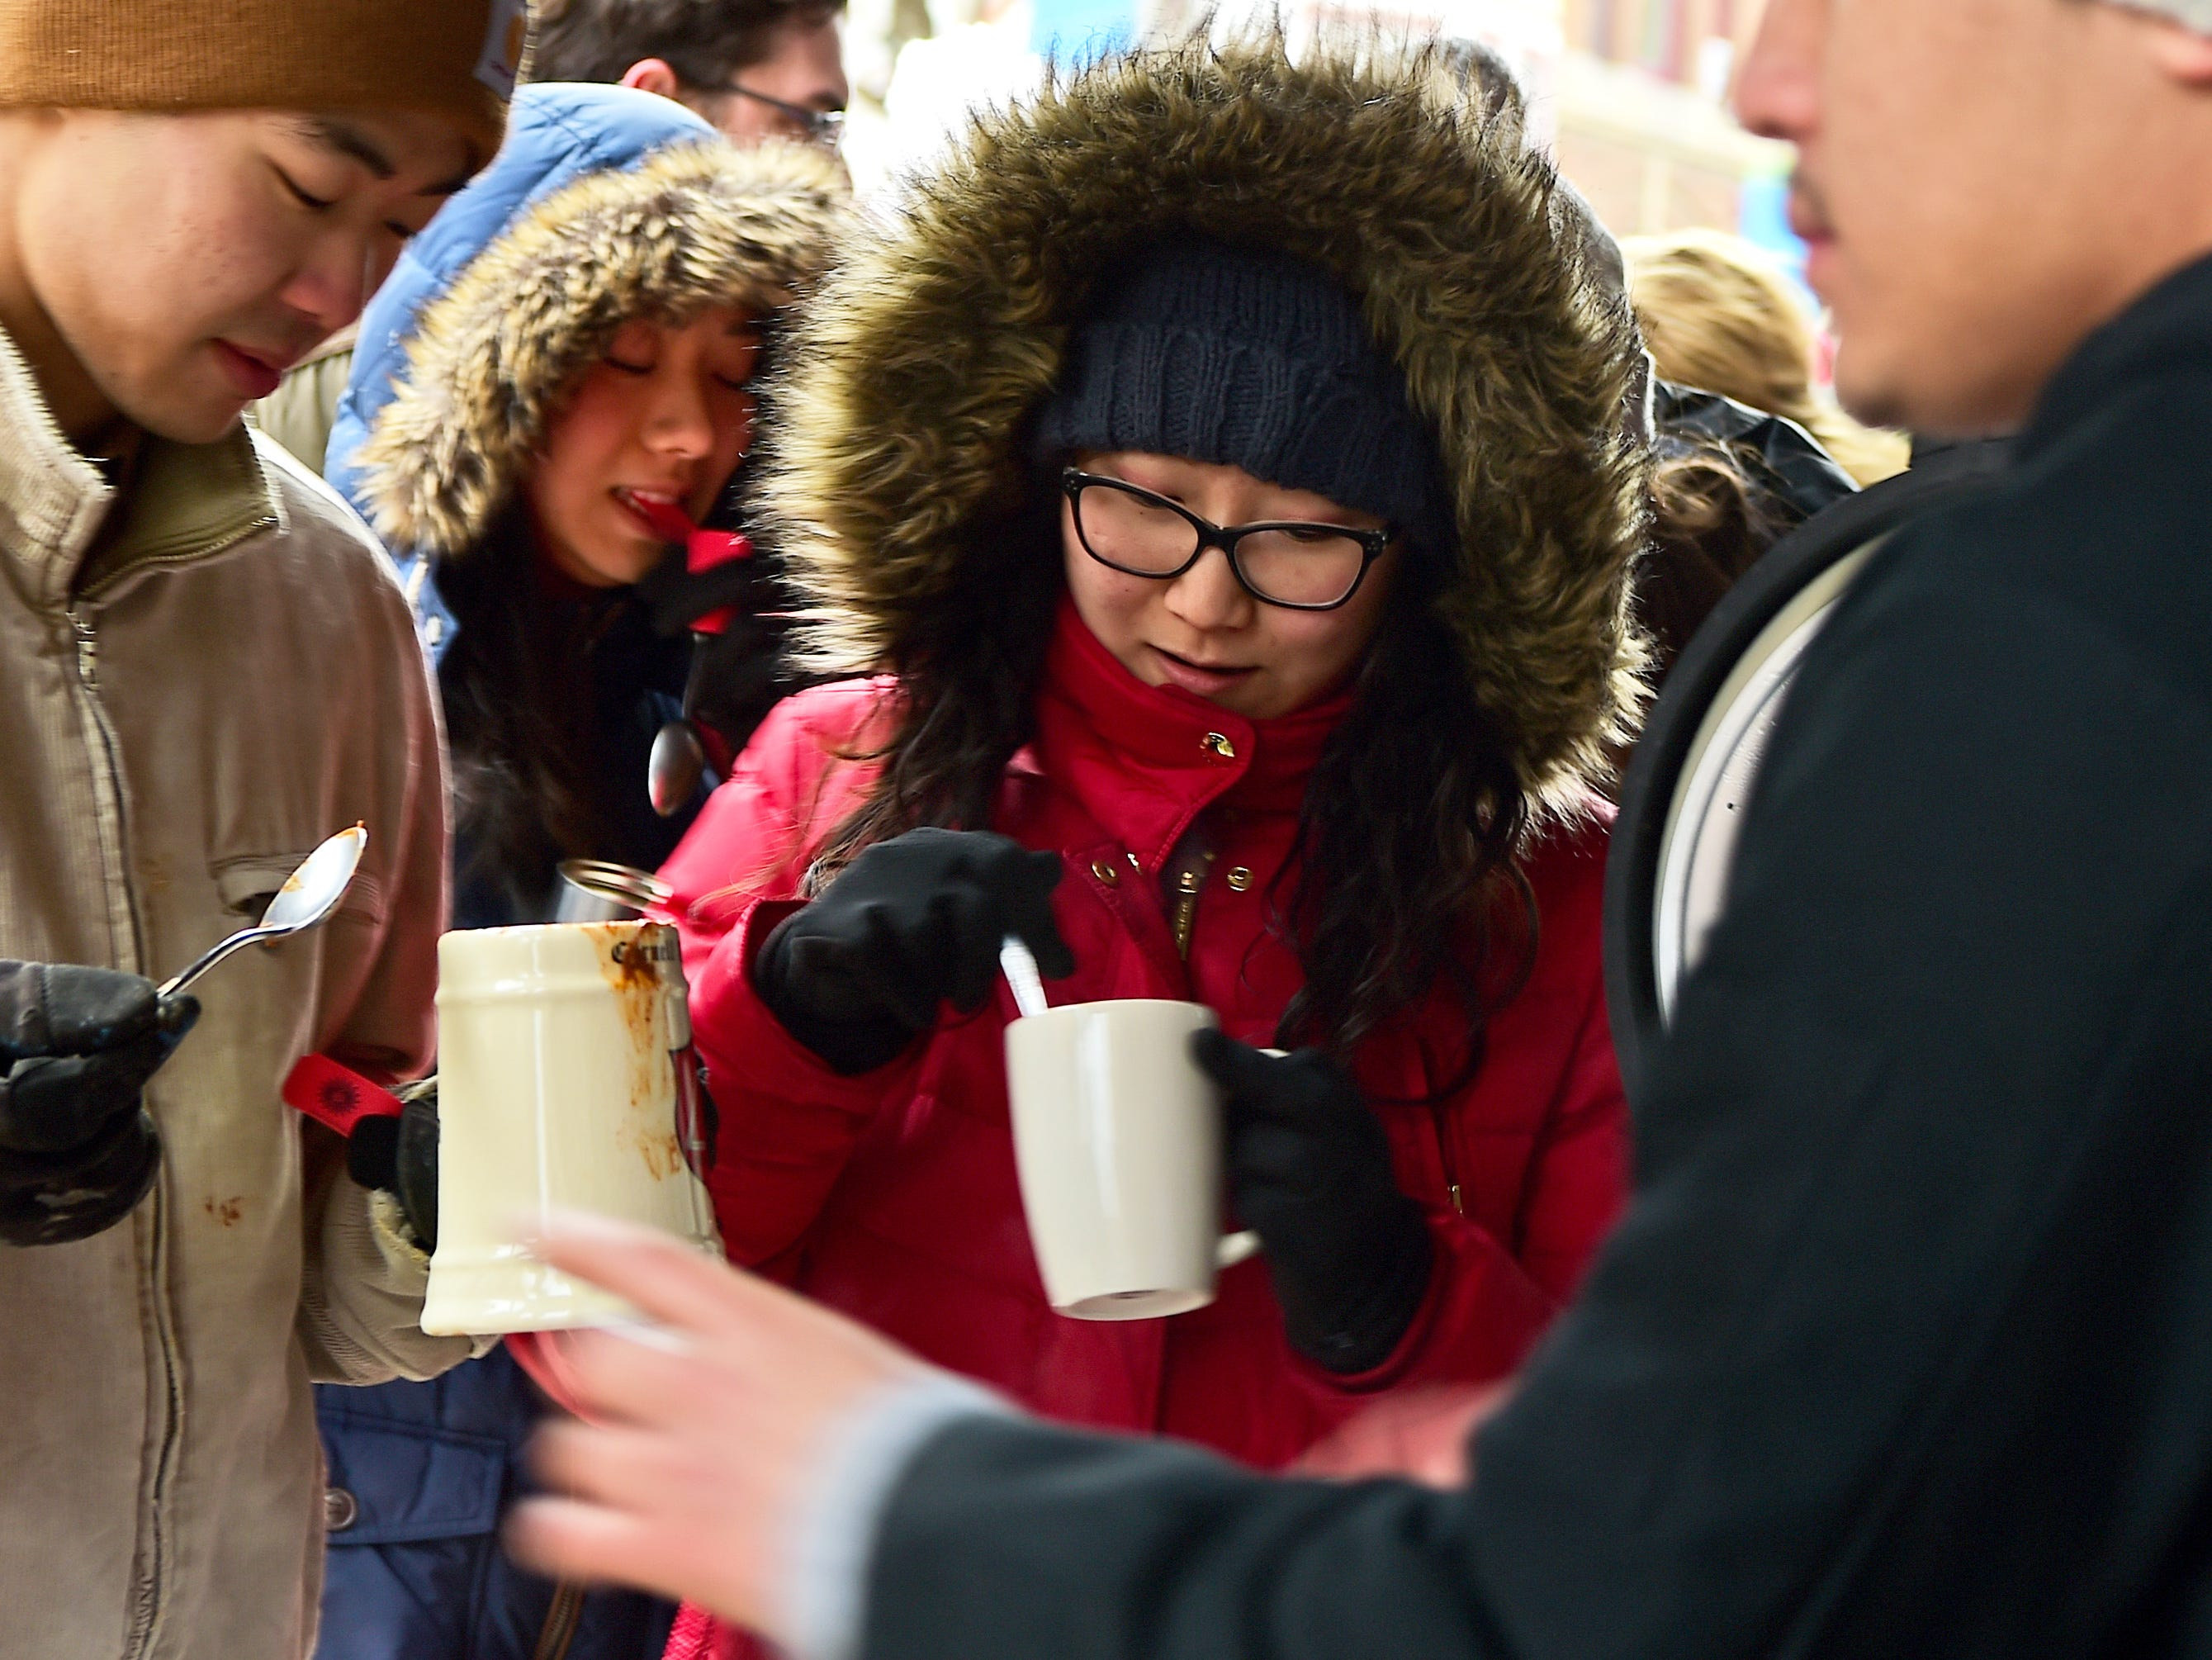 The 21st Annual Downtown Ithaca Chili Cook-off was held on the Ithaca Commons on Saturday, February 8, 2019.